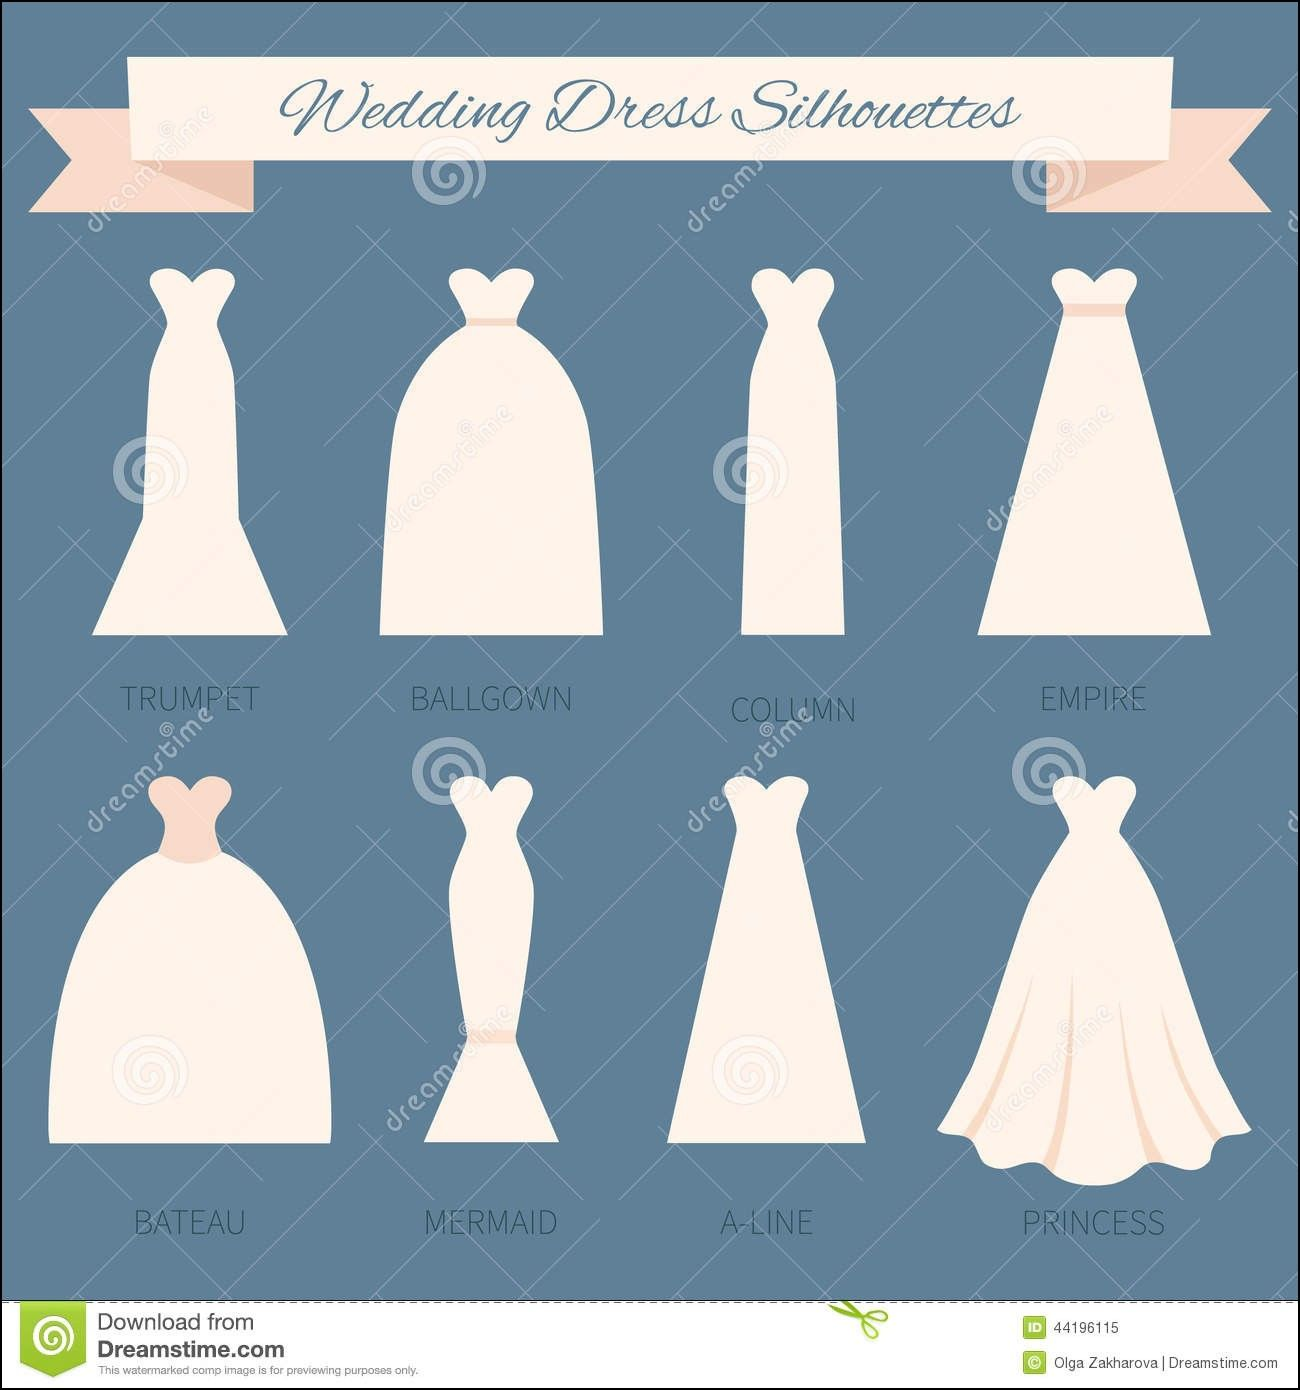 Types of wedding dresses styles wedding ideas pinterest